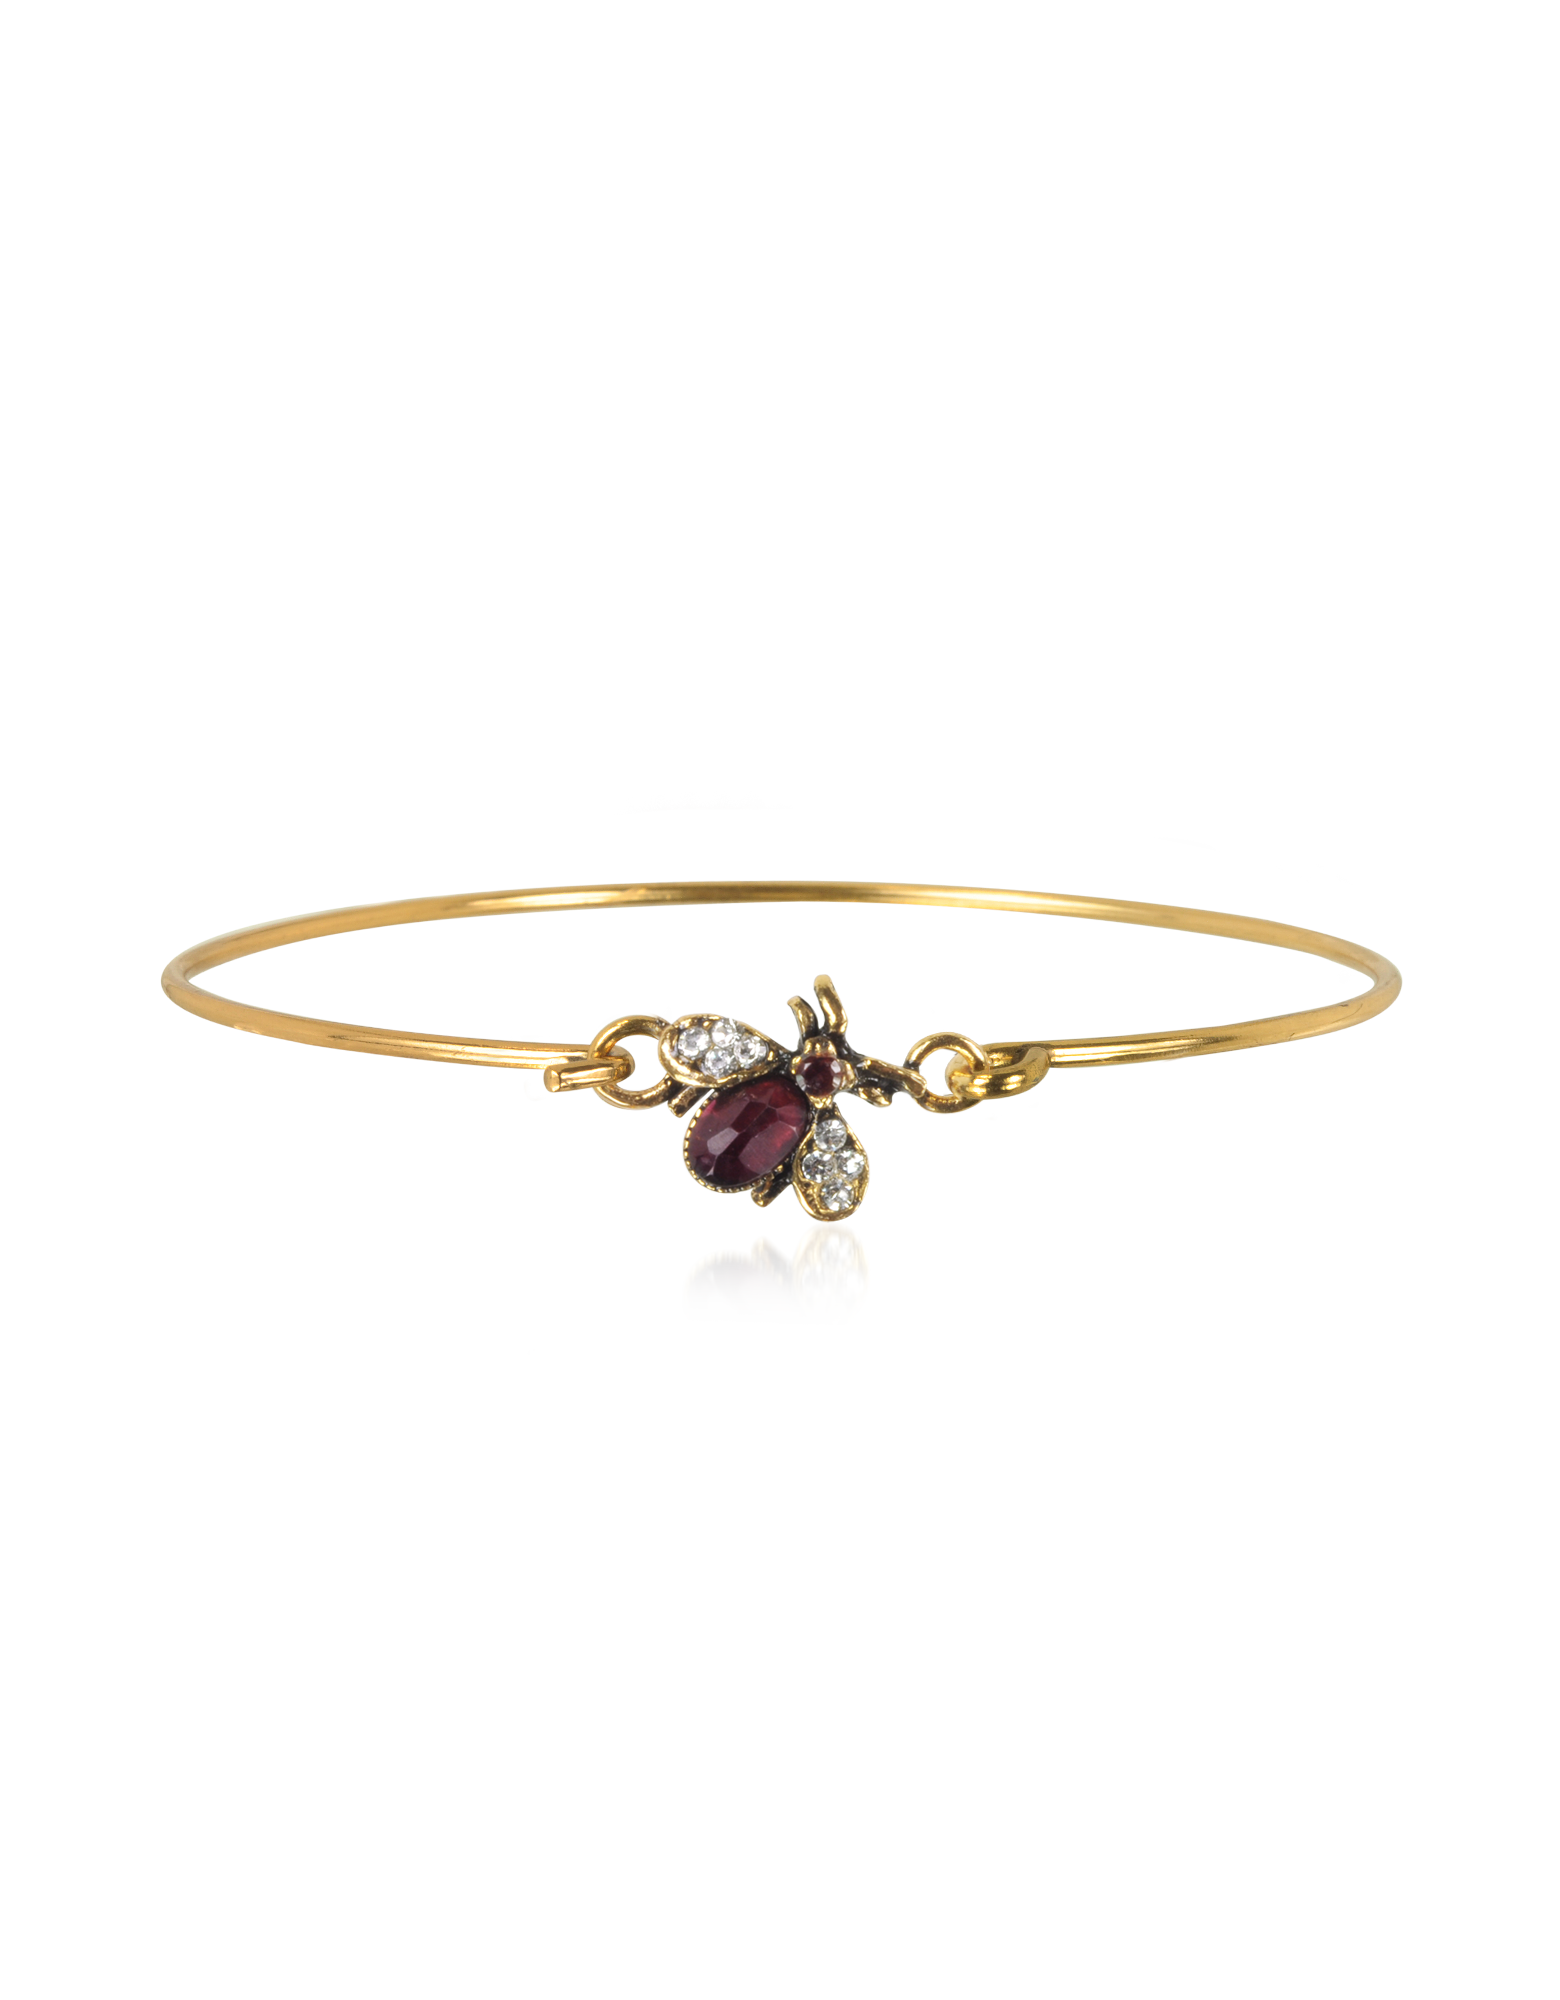 Image of Brass and Crystals Moschina Bangle